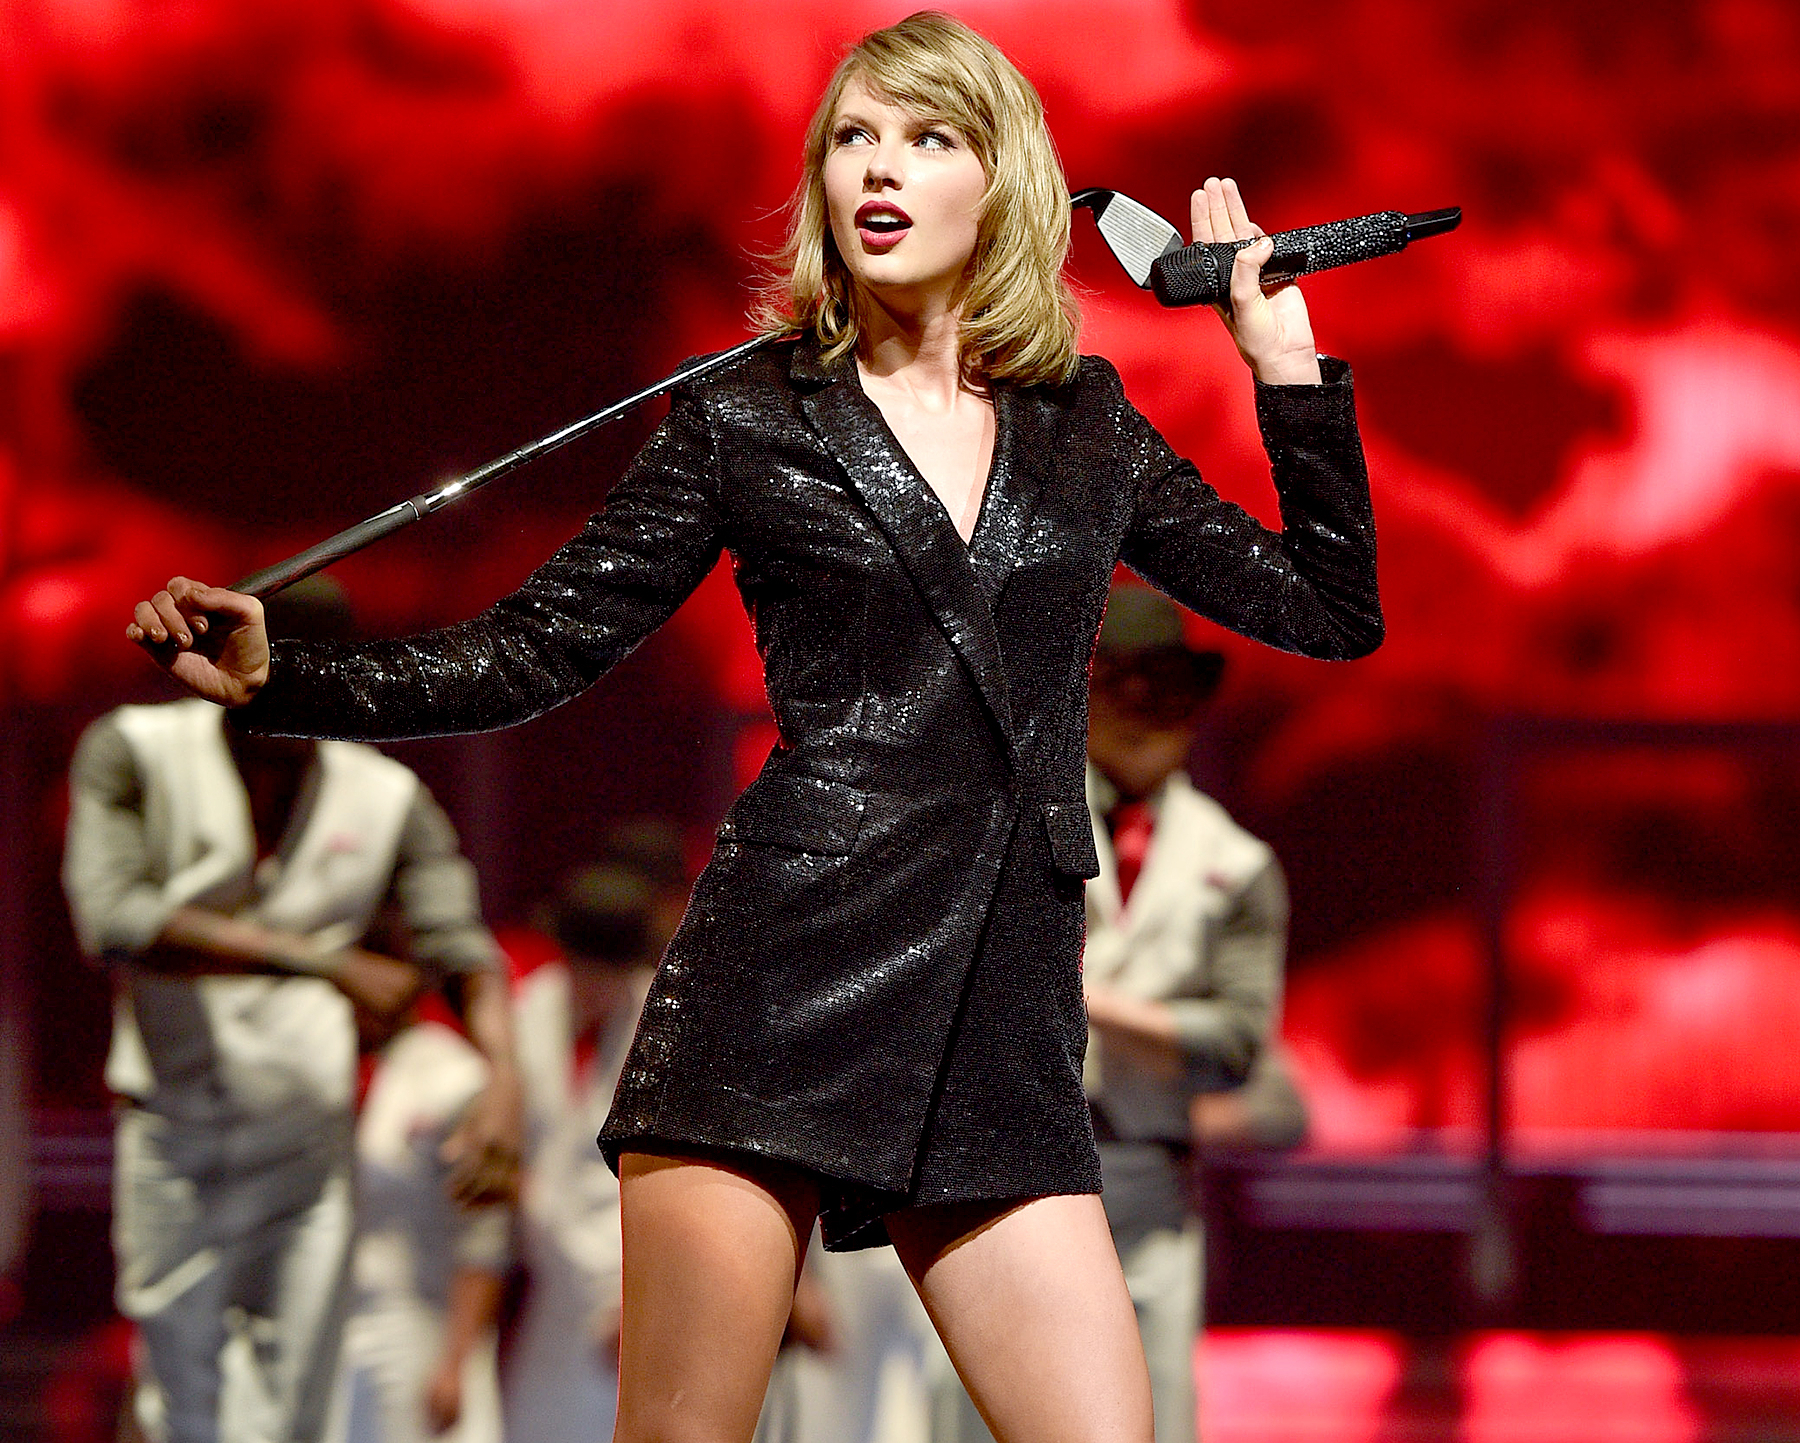 Taylor Swift performs during the '1989' world tour at Canadian Tire Centre in Kanata, Canada, on July 6, 2015.